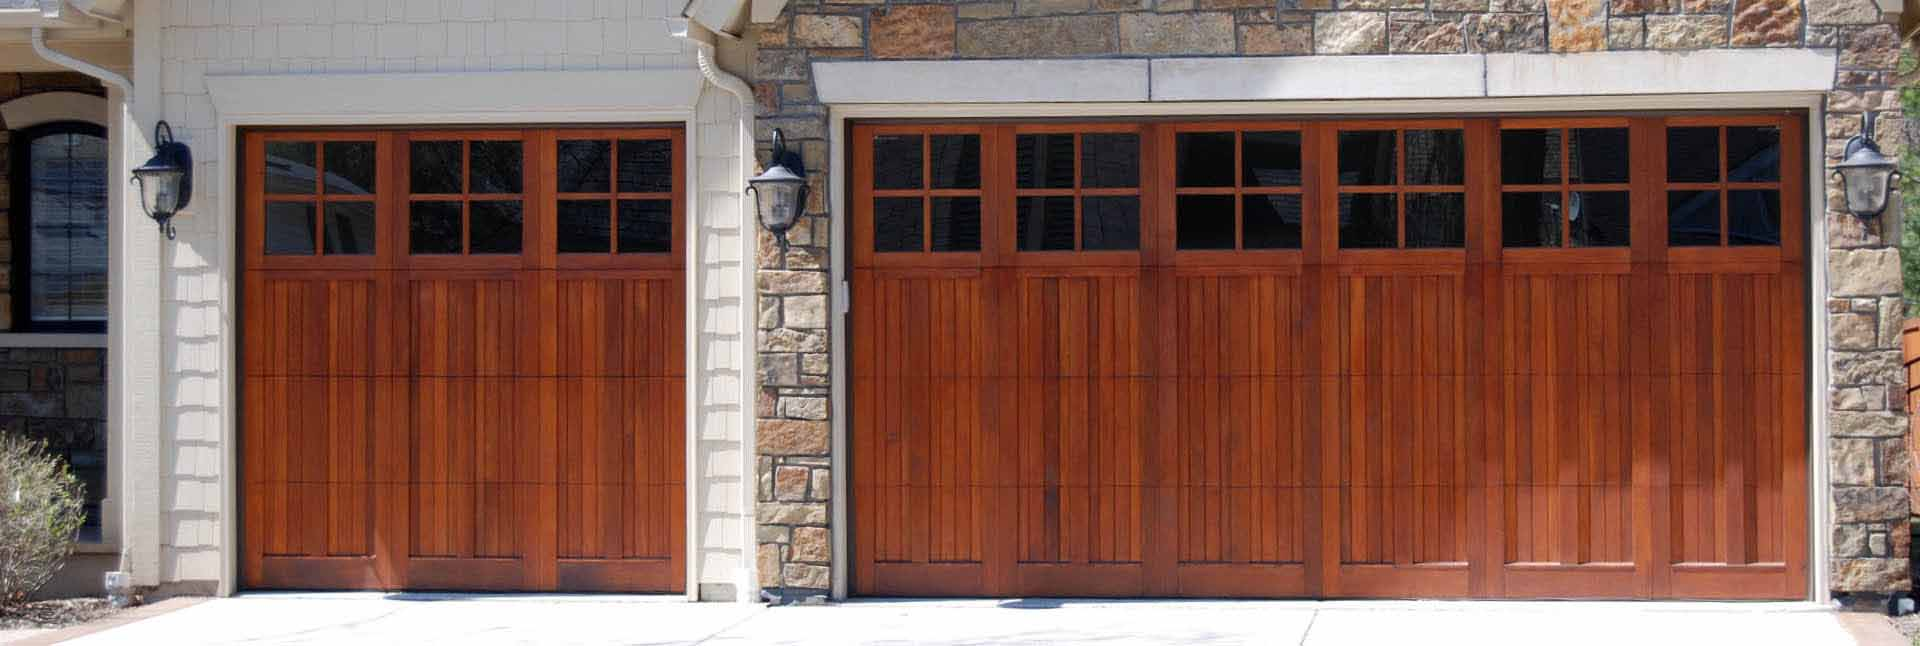 Dallas Garage Door Repair  Installation Commercial Garage Doors Call 8004714505